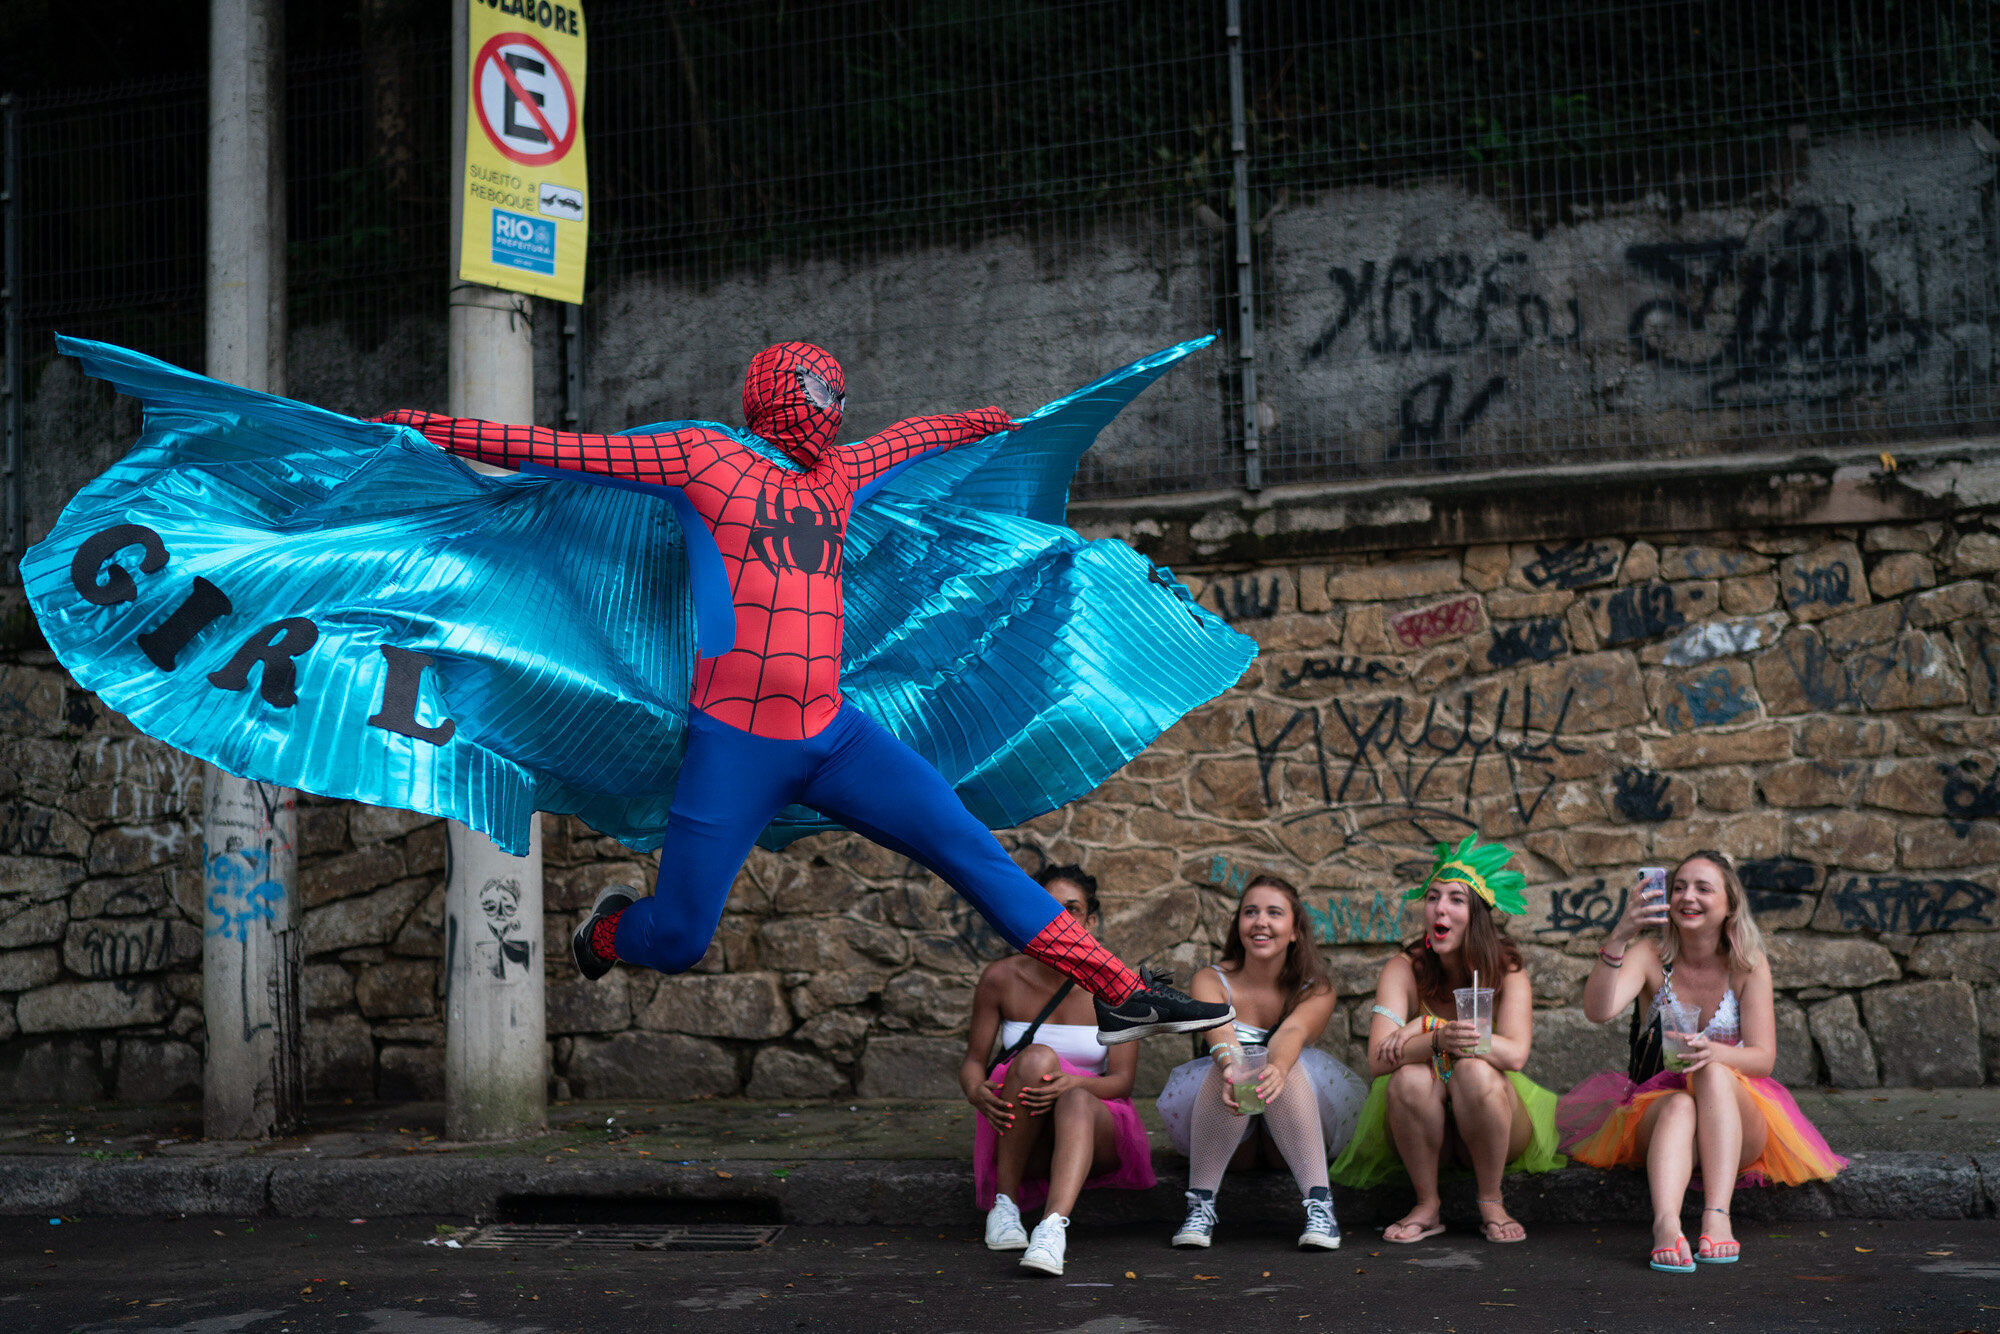 """A reveler dressed in a Spider-Man costume strikes a pose at the """"Ceu na Terra"""" or Heaven on Earth street party in Rio de Janeiro, Brazil on Feb. 22, 2020, during the Carnival celebration. (AP Photo/Leo Correa)"""